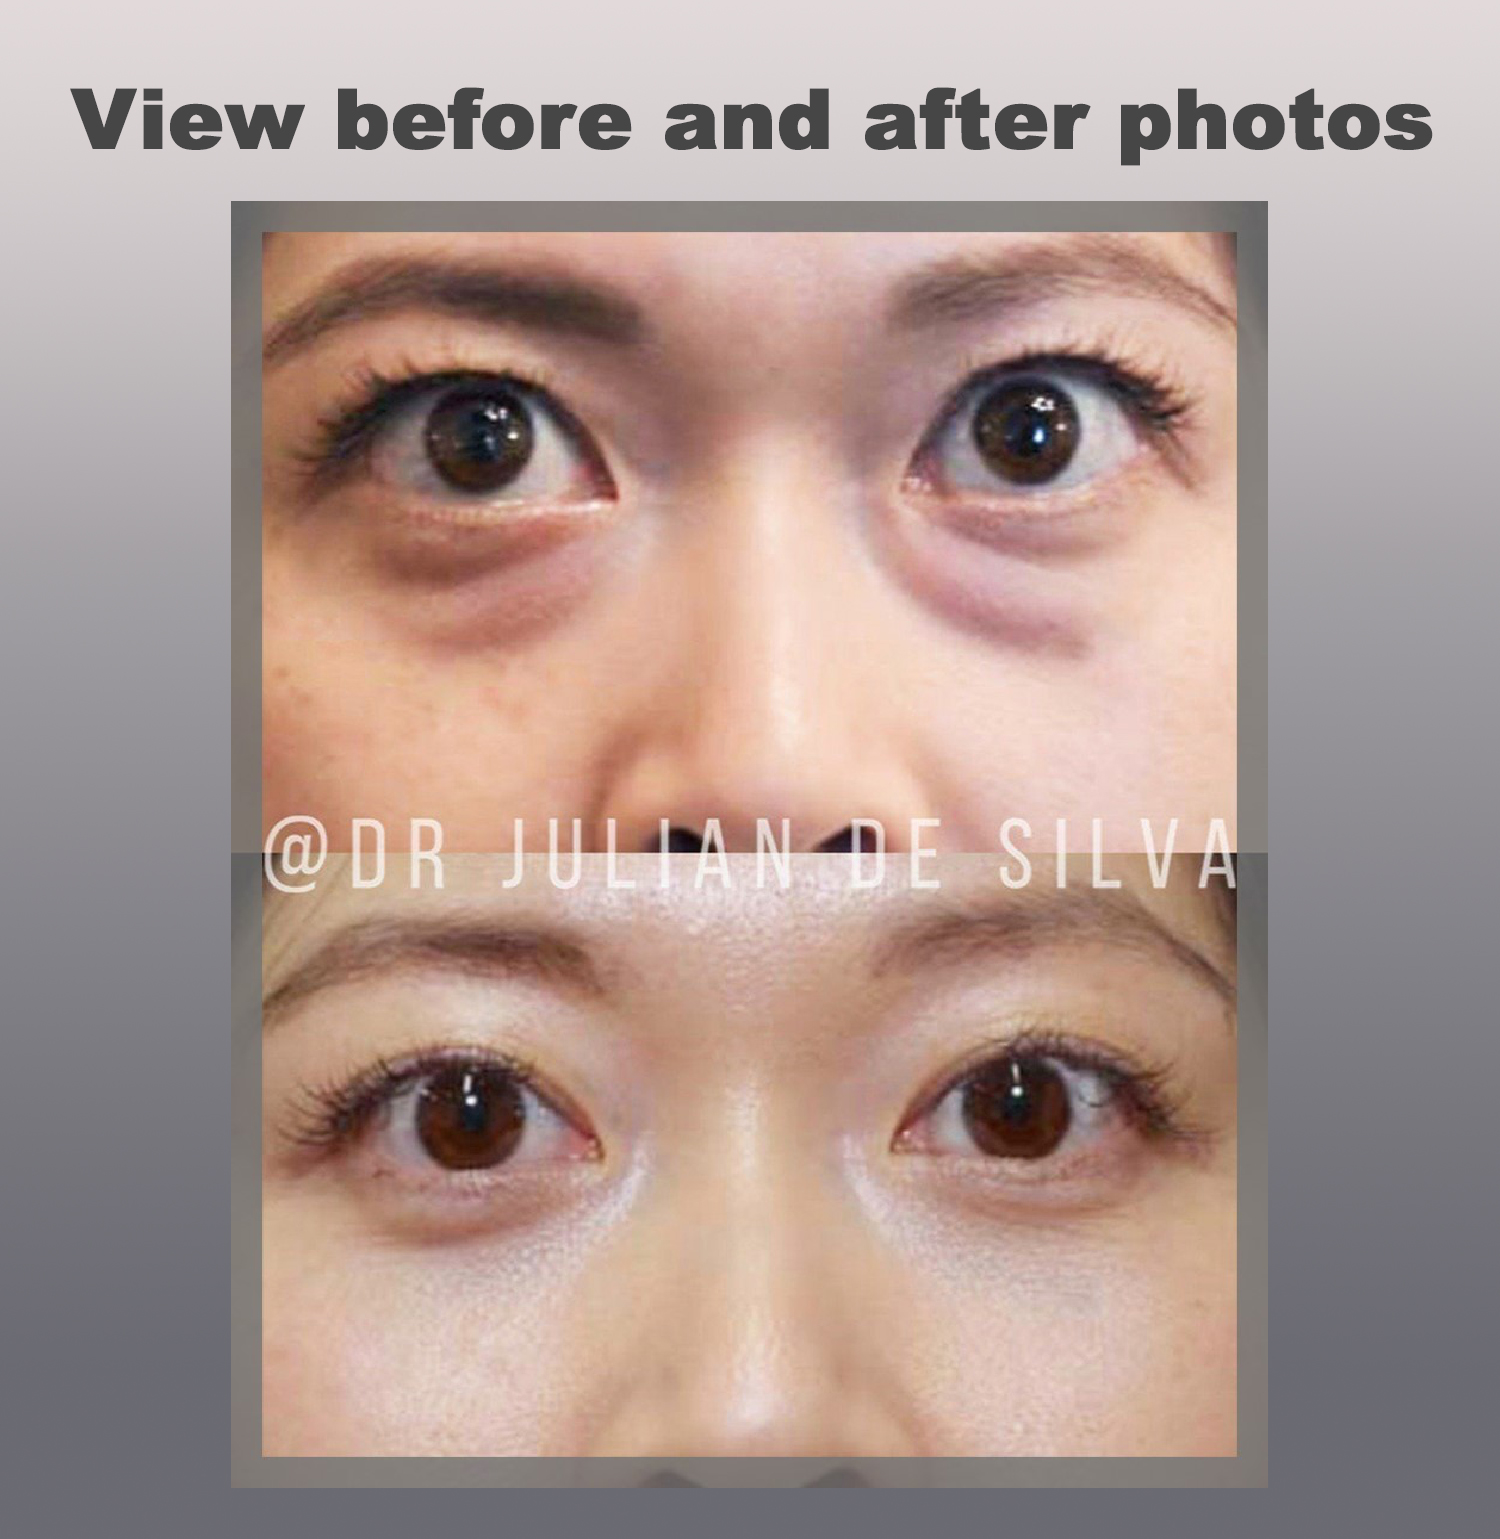 View Before and After Asian blepharoplasty Treatment photos